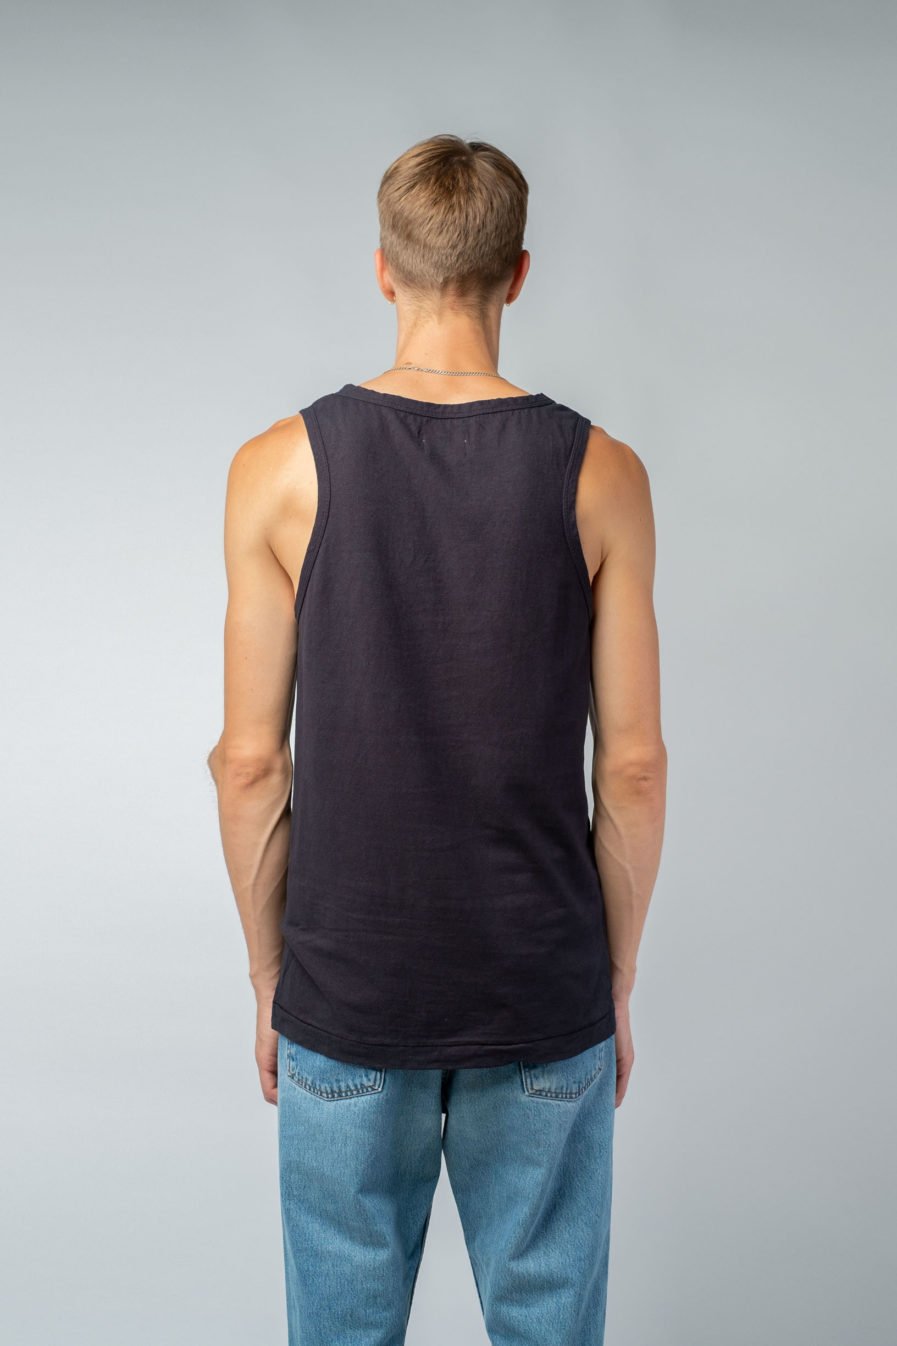 MAN unisex singlet tanktop hemp organic cotton SONNY Carbon black back